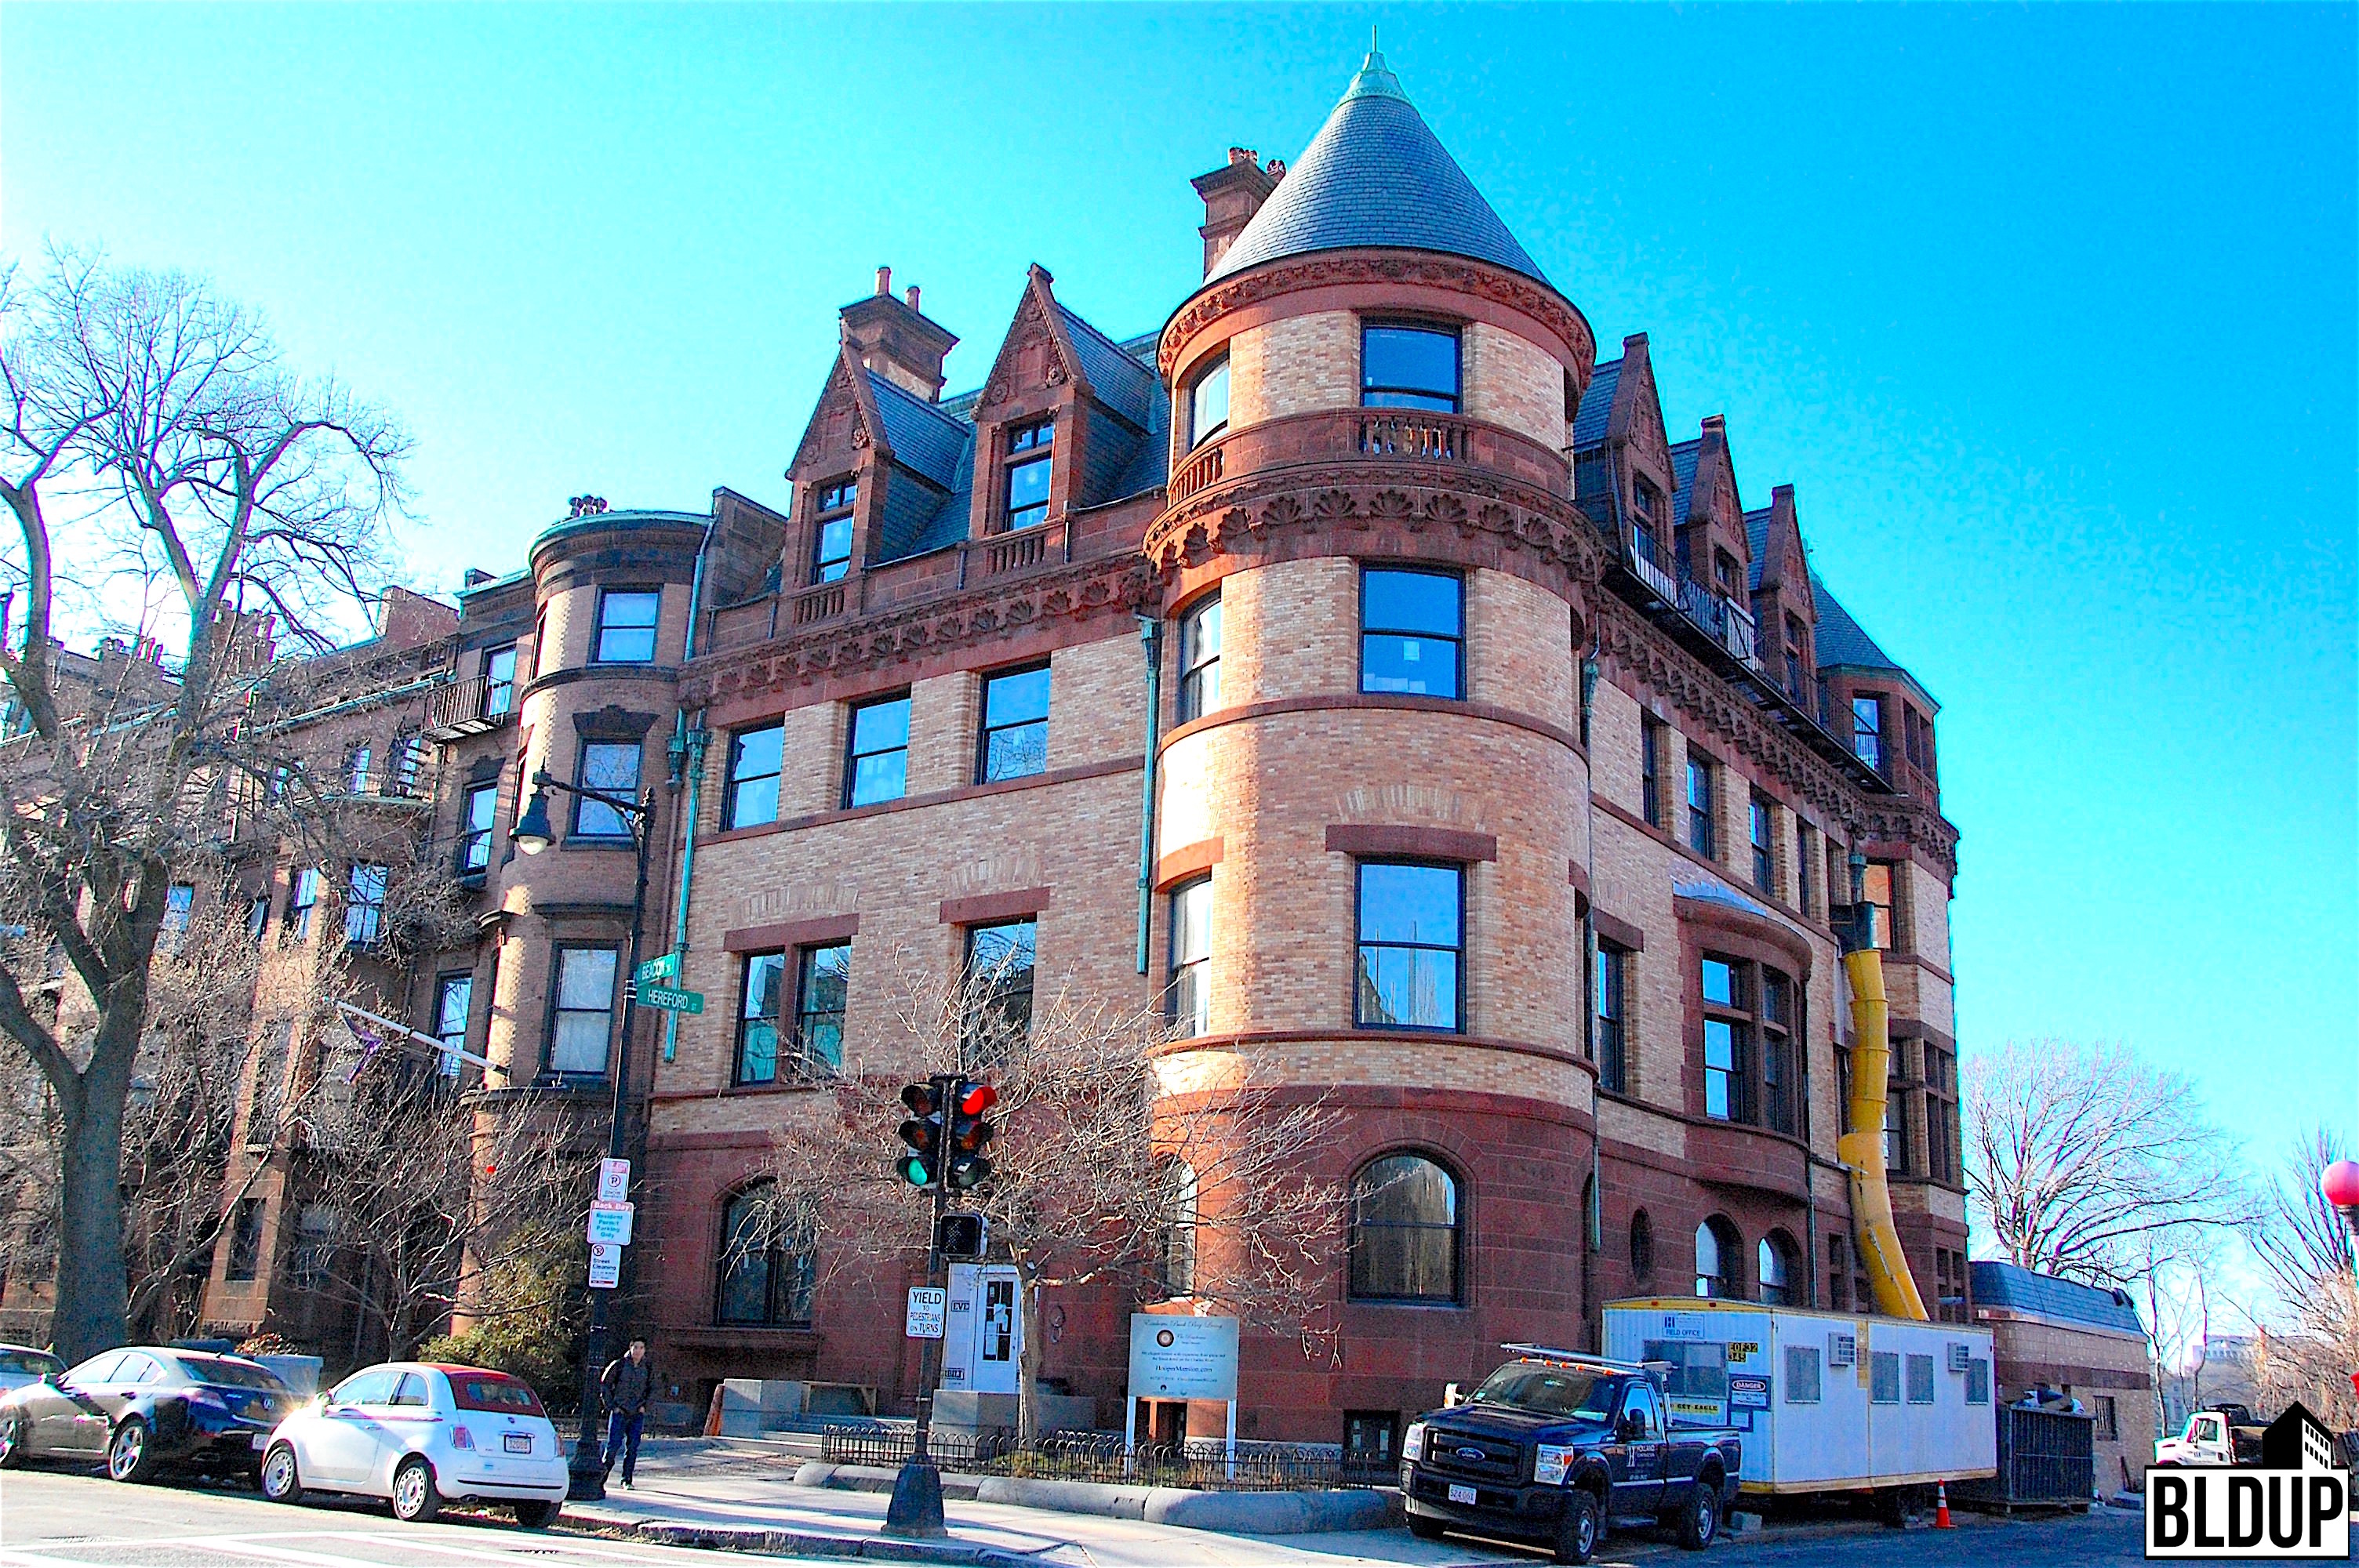 The residences at hooper mansion historic back bay storrow drive charles river view boston six condominiums luxury congress group developer hacin associates architecture neoscape holland construction 1